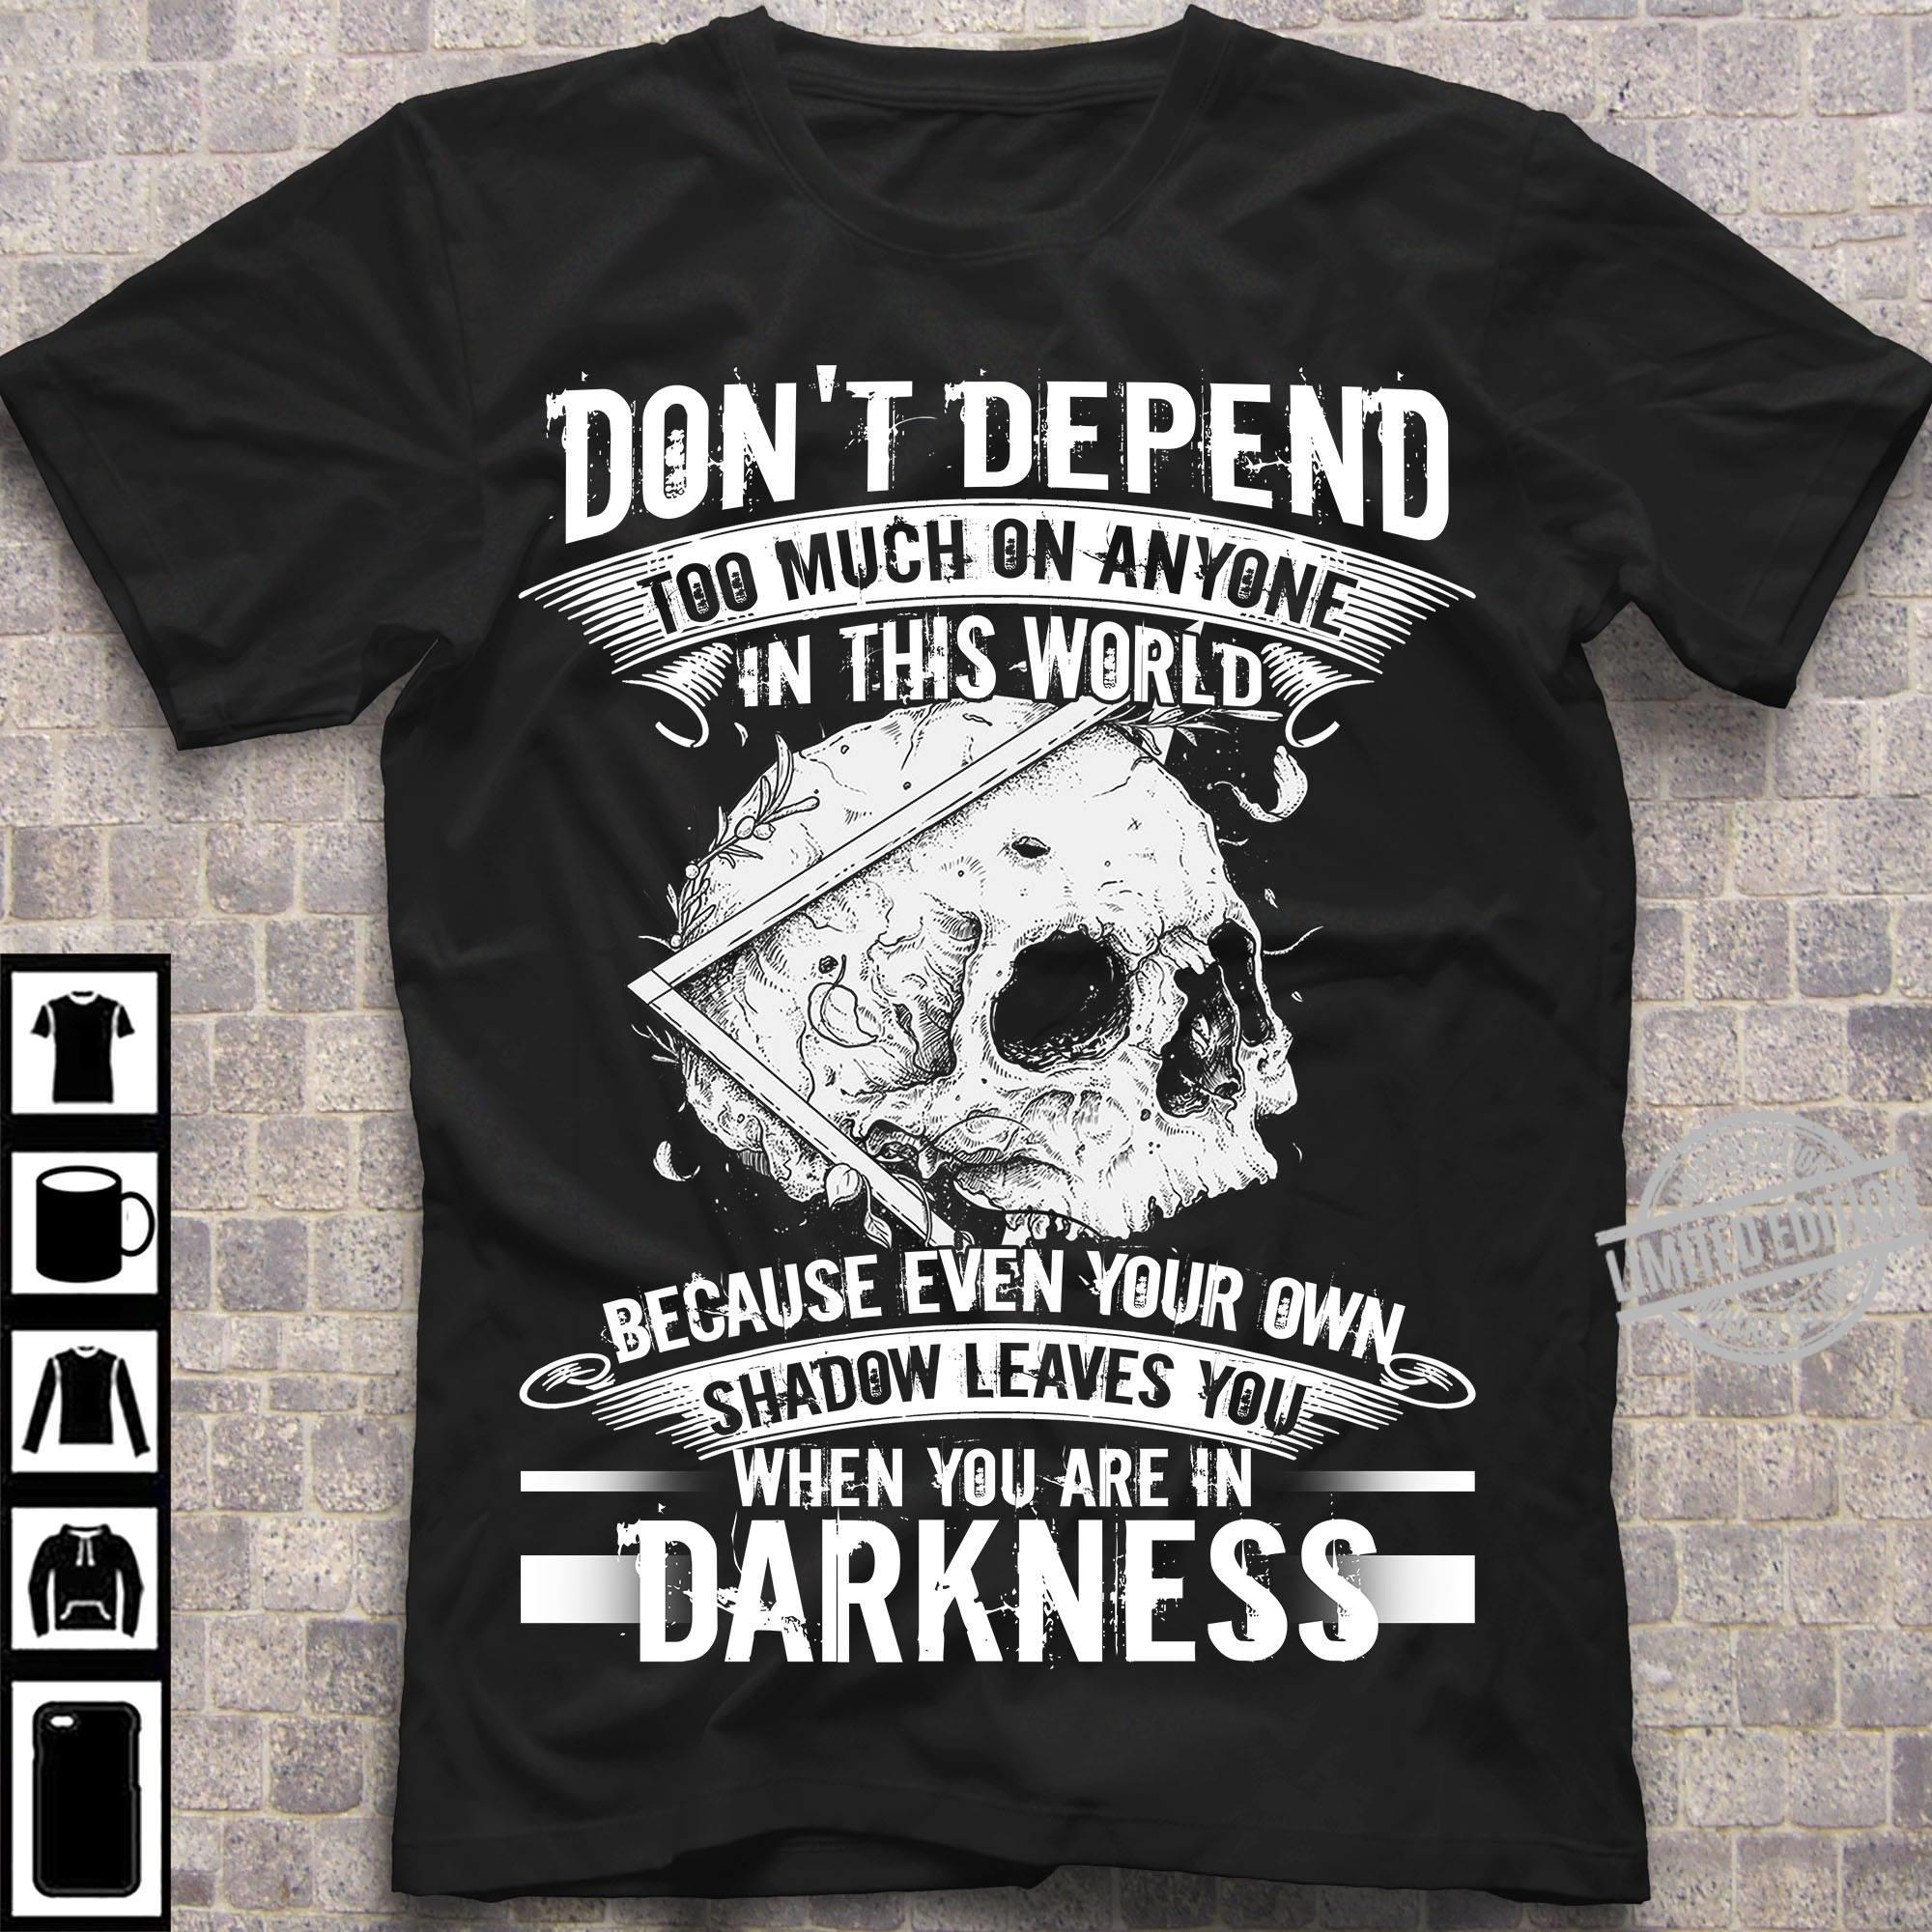 Don't Depend Too Much On Anyone In This World Because Even Your Own Shadow Leaves You When You Are In Darkness Shirt